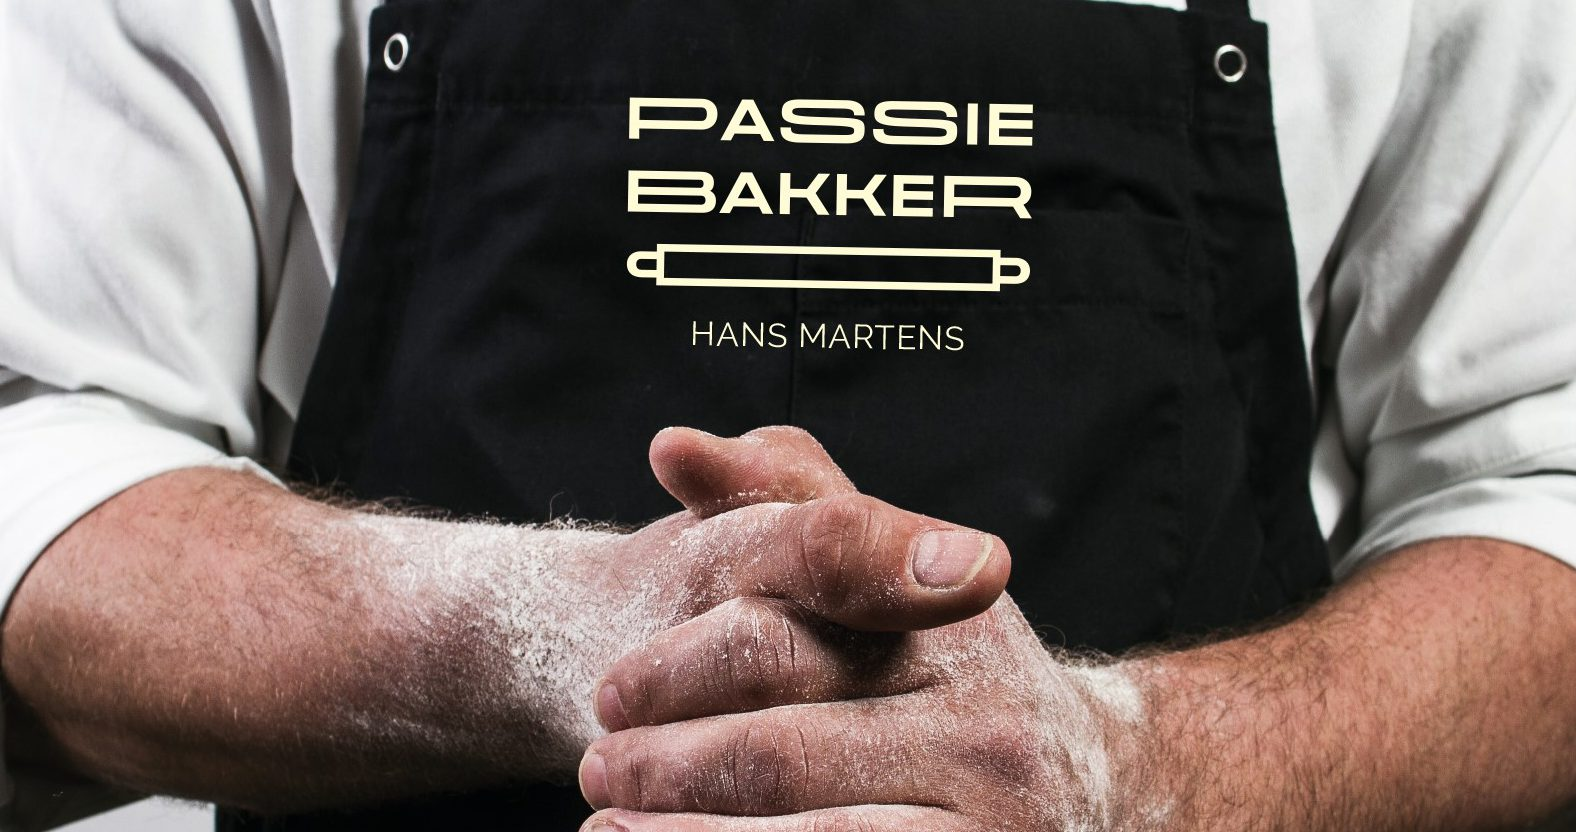 passiebakker.be